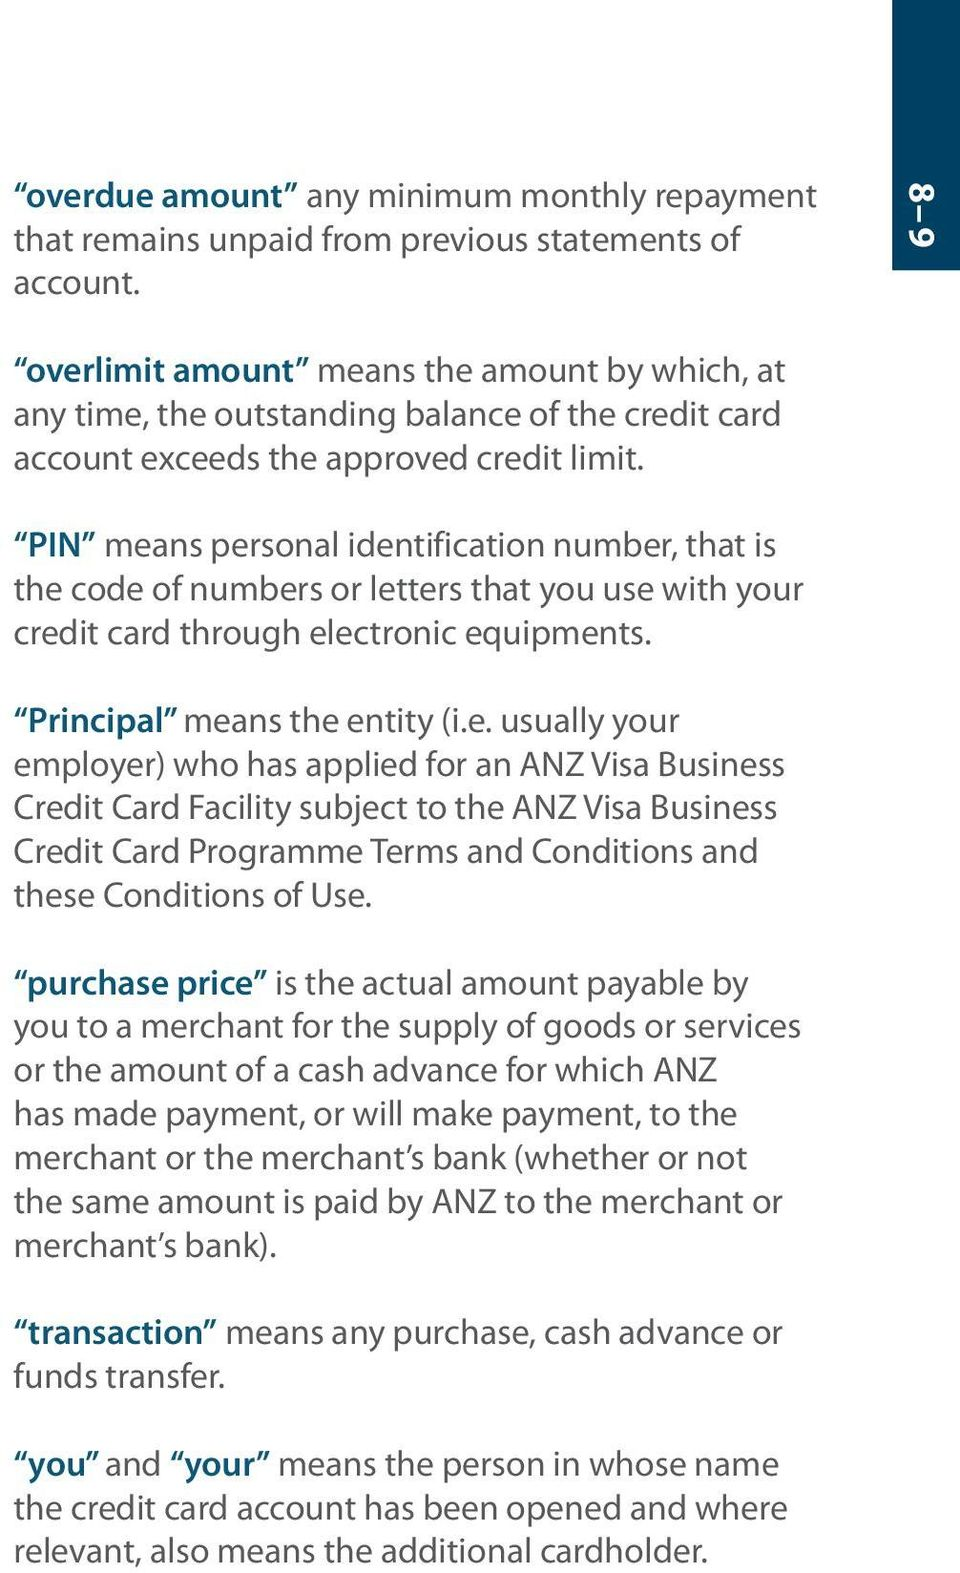 PIN means personal identification number, that is the code of numbers or letters that you use with your credit card through electronic equipments. Principal means the entity (i.e. usually your employer) who has applied for an ANZ Visa Business Credit Card Facility subject to the ANZ Visa Business Credit Card Programme Terms and Conditions and these Conditions of Use.